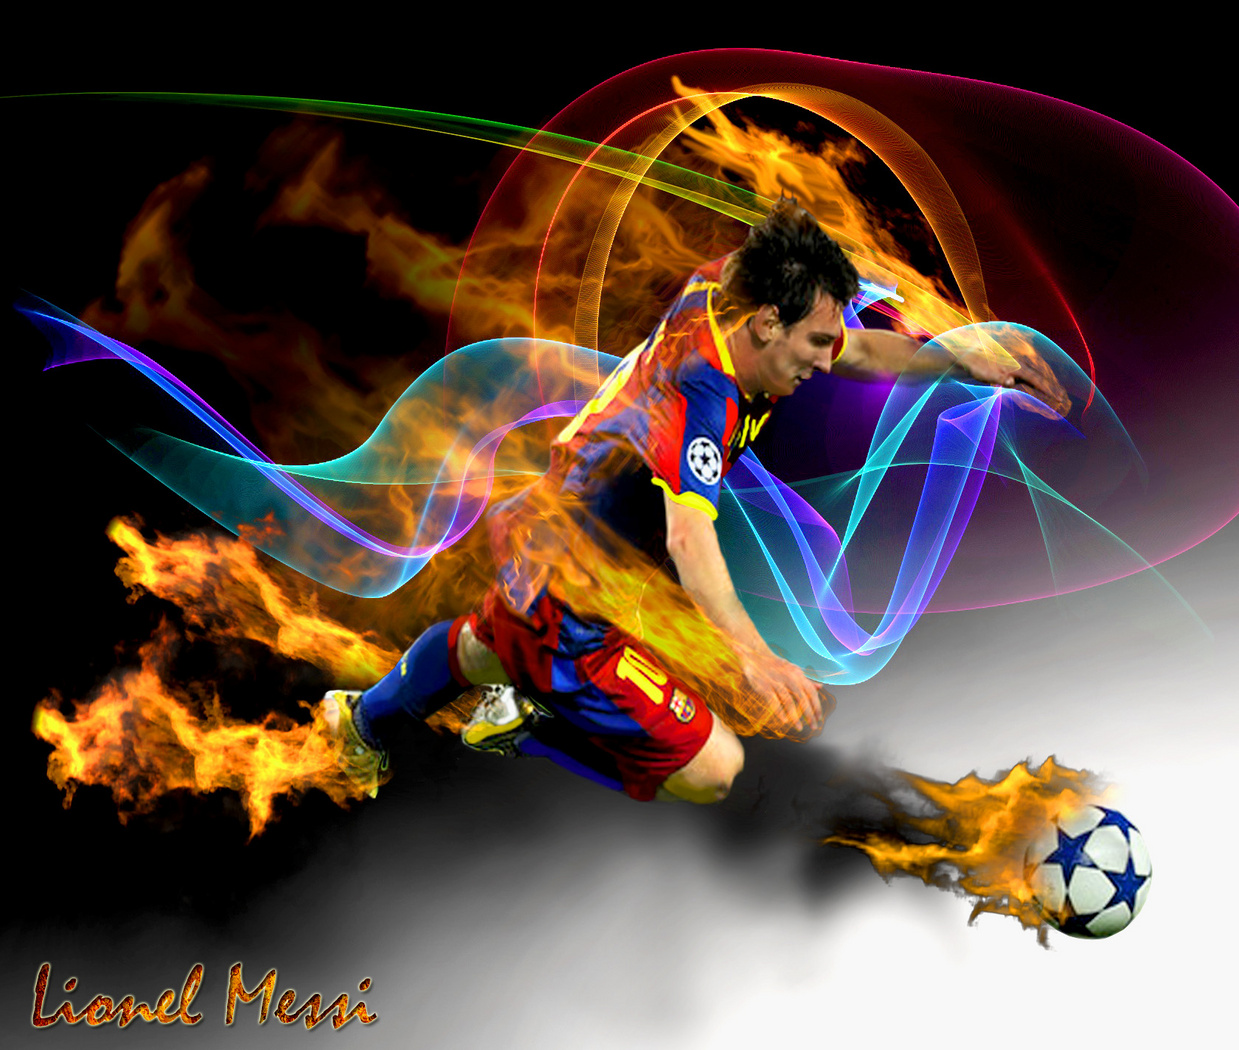 All Wallpapers Lionel Messi hd New Nice Wallpapers 2013 1239x1050